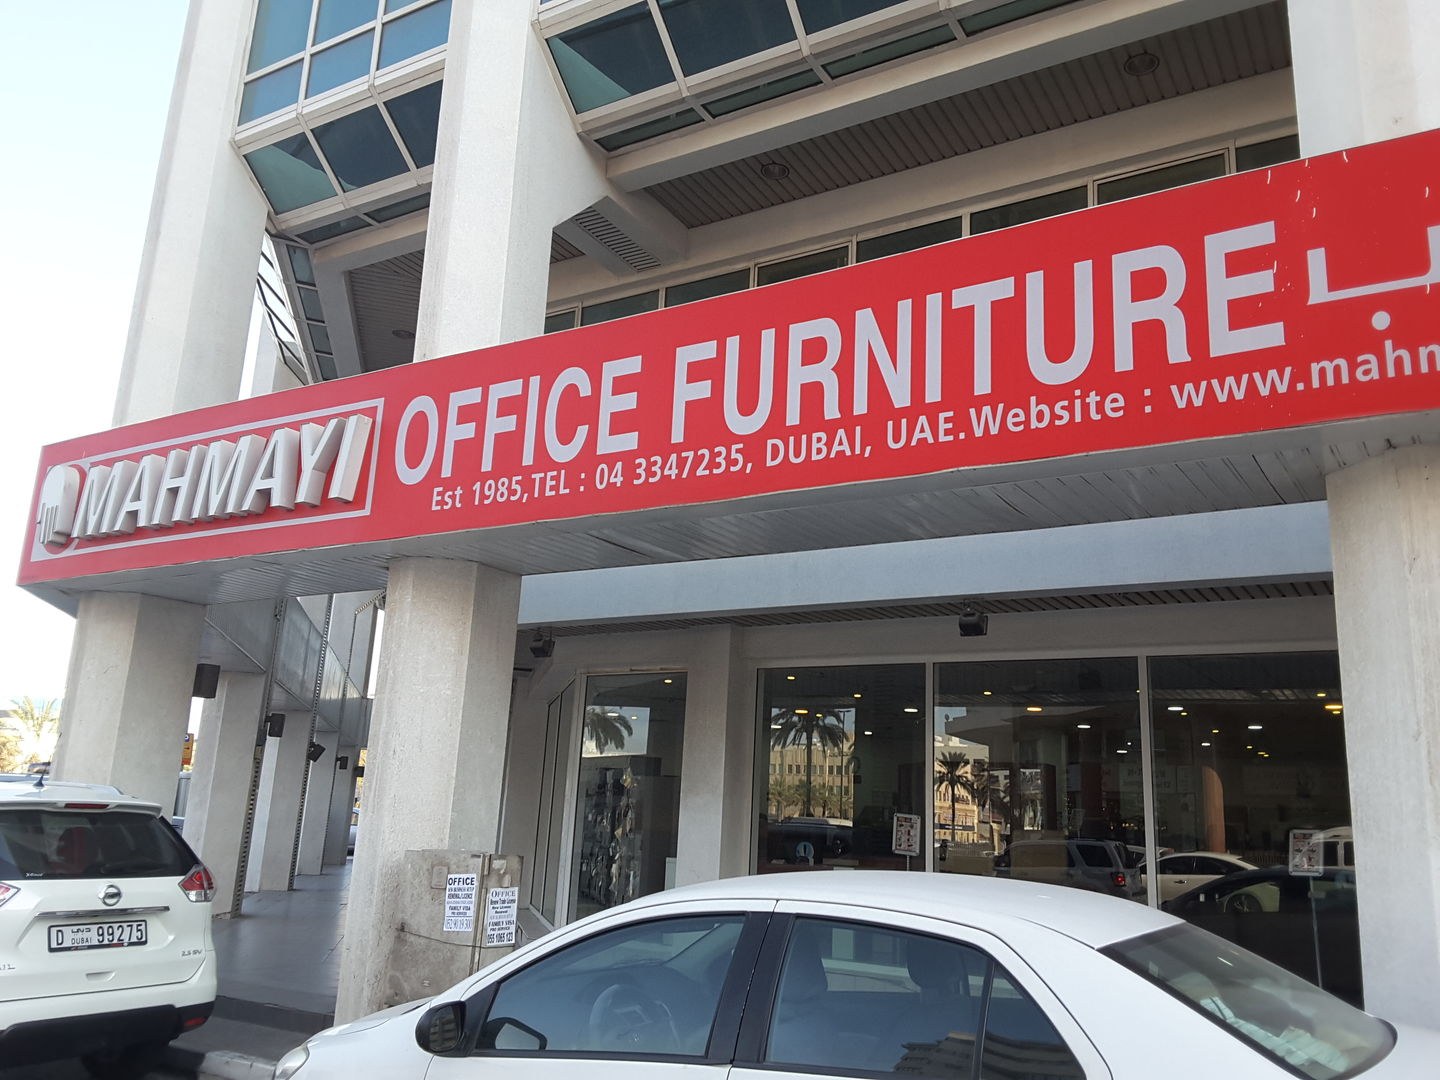 HiDubai-business-mahmayi-office-furniture-b2b-services-office-furniture-plants-decor-al-karama-dubai-2